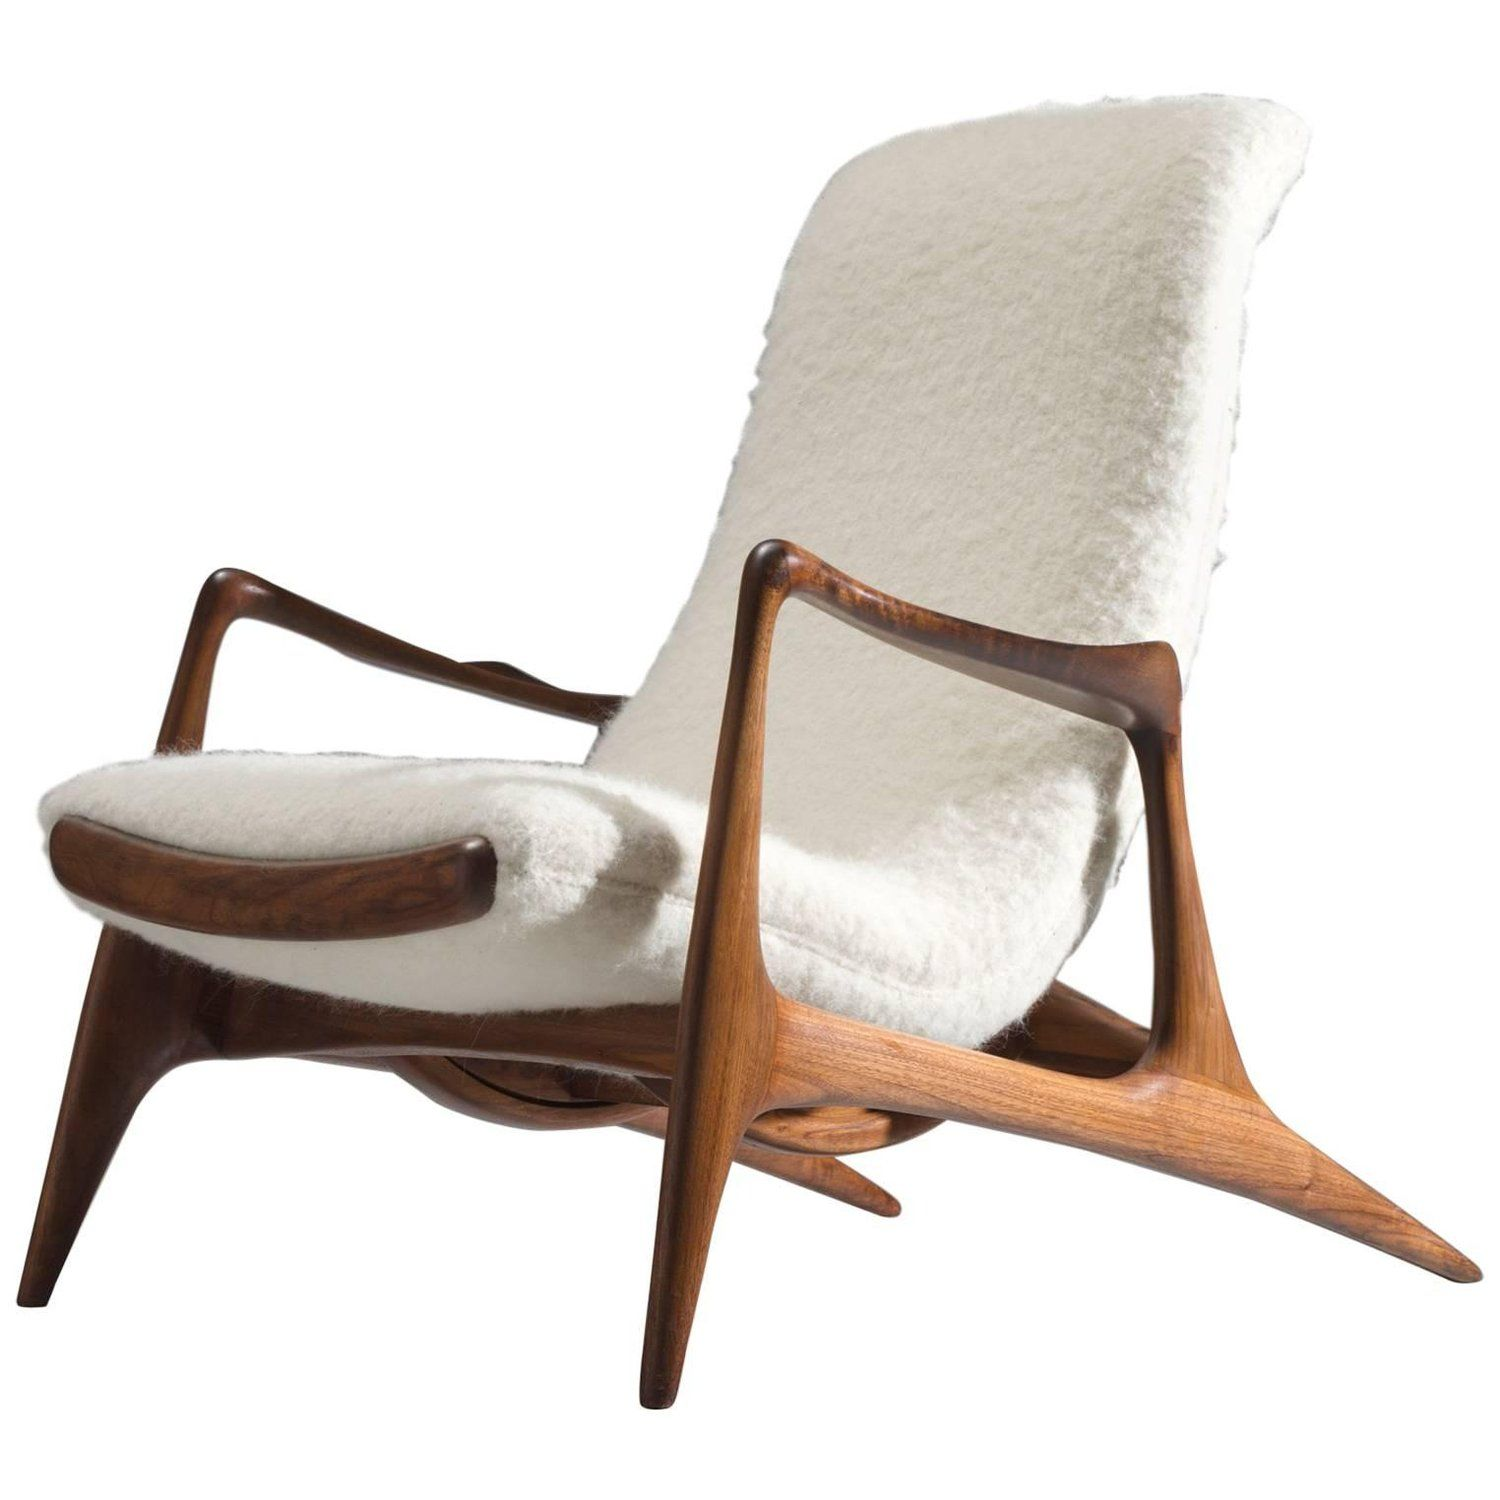 Contour Chair Lounge Vladimir Kagan Walnut Contour Chair Reupholstered In Wool My